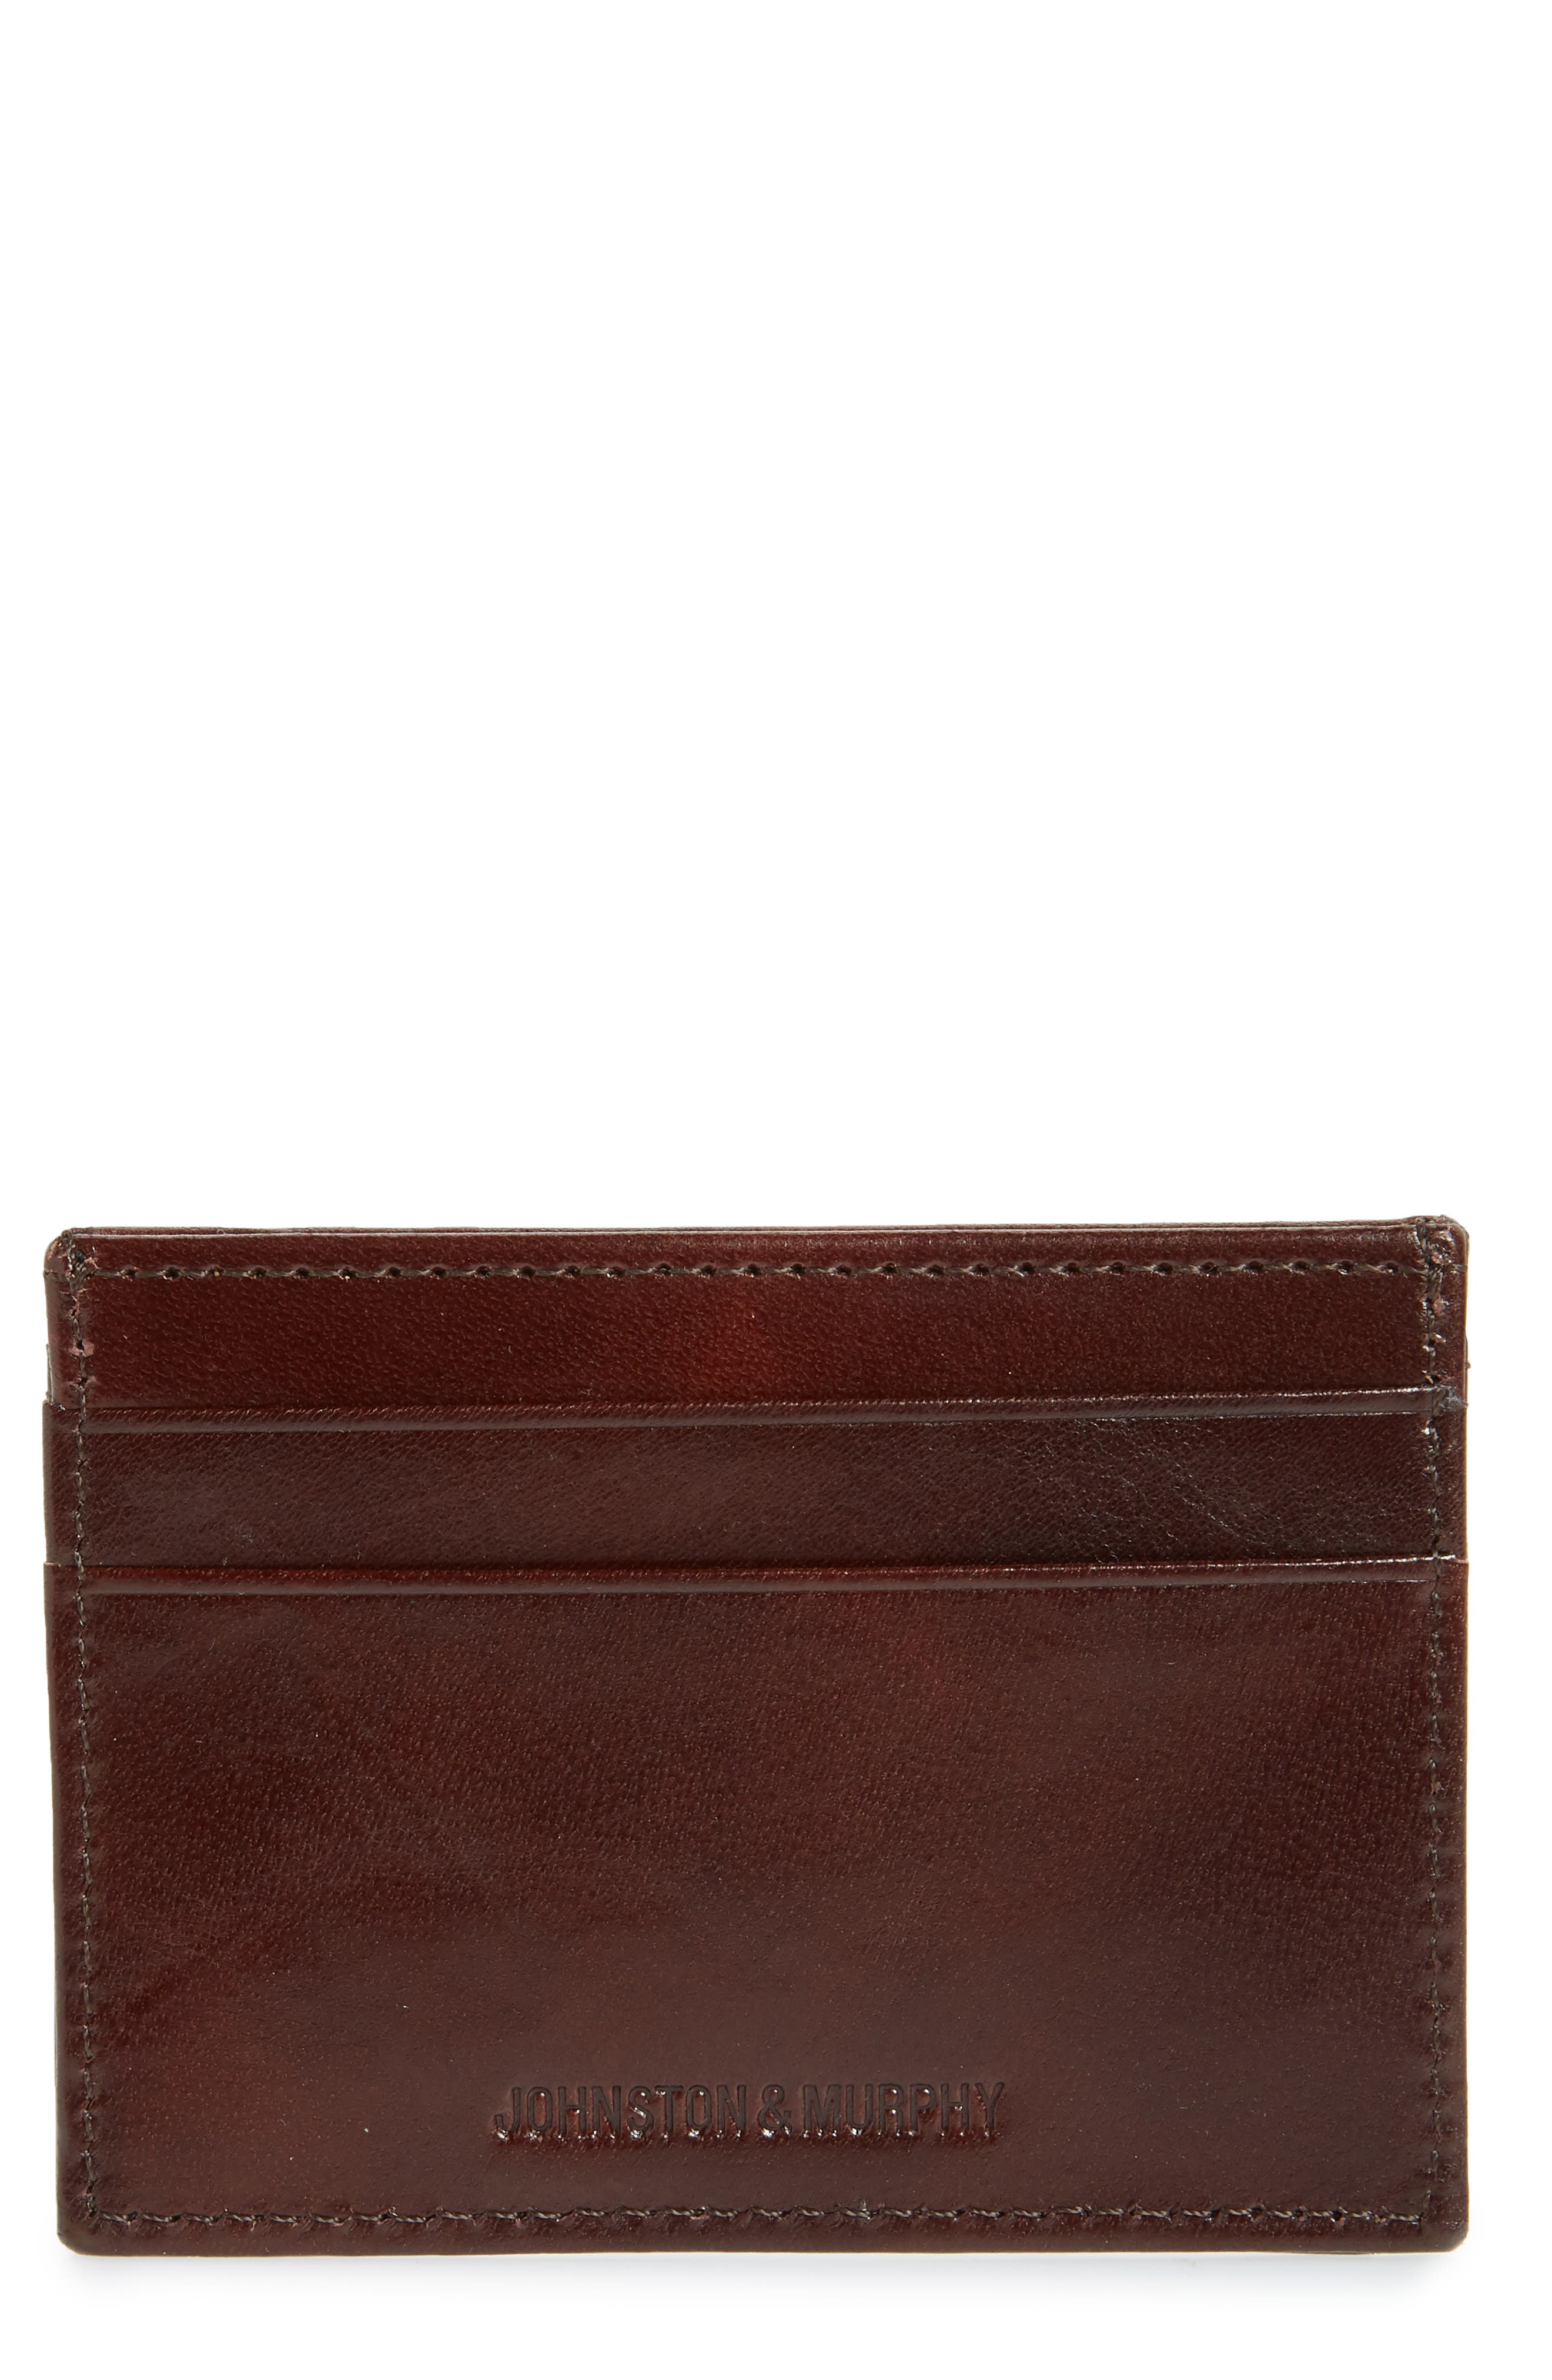 Richly textured full-grain leather elevates a slim card case lined with linen for versatile appeal and RFID shielding protects your personal info. Style Name: Johnston & Murphy Leather Card Case. Style Number: 5338409. Available in stores.